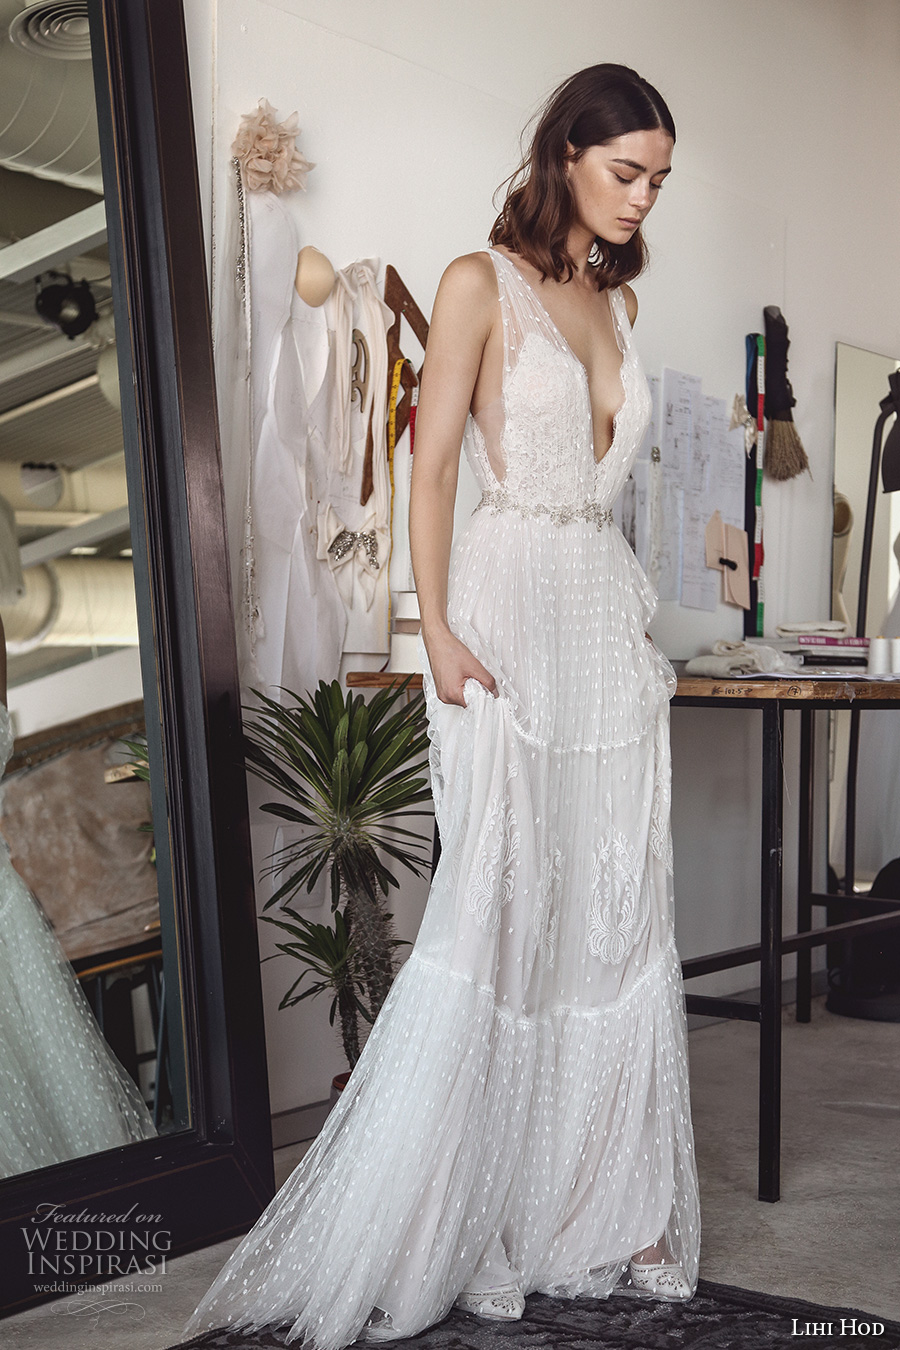 lihi hod 2017 bridal sleeveless deep plunging v neck full embellishment sexy bohemian a line wedding dress v low back sweep train (sydney) sdv mv